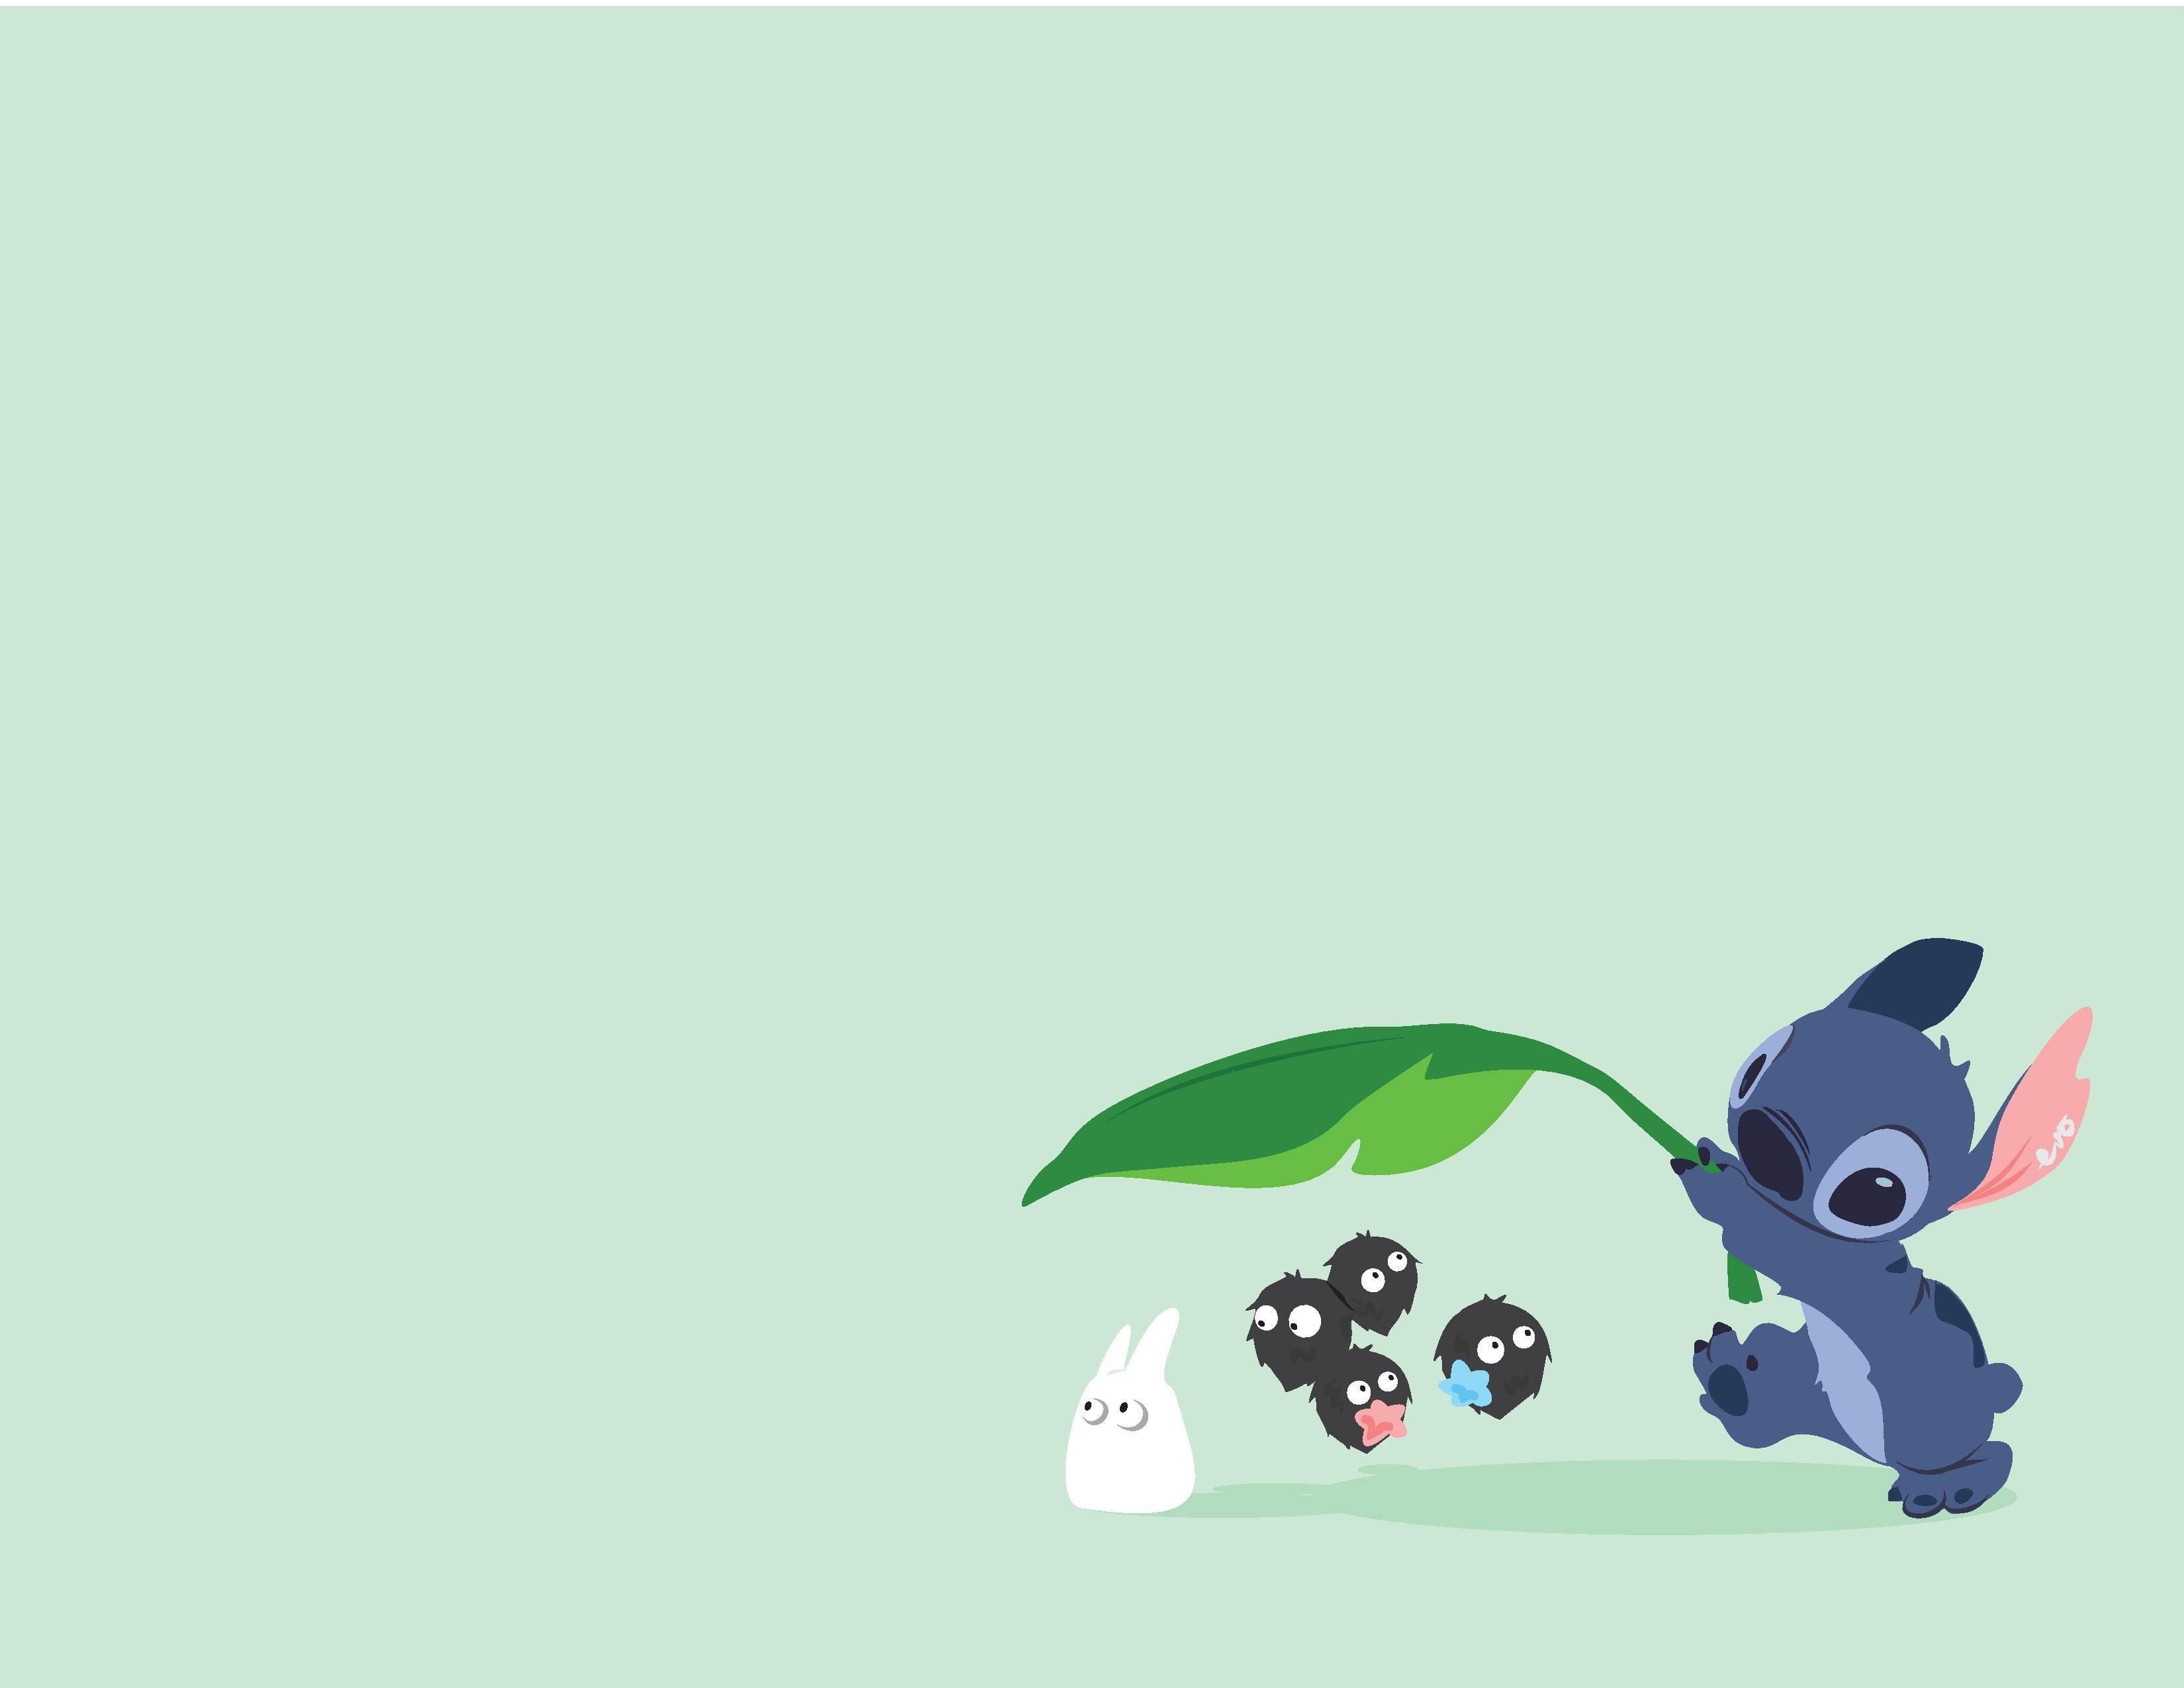 Stitch wallpaper tumblr iphone google search anime for Fond ecran tumblr